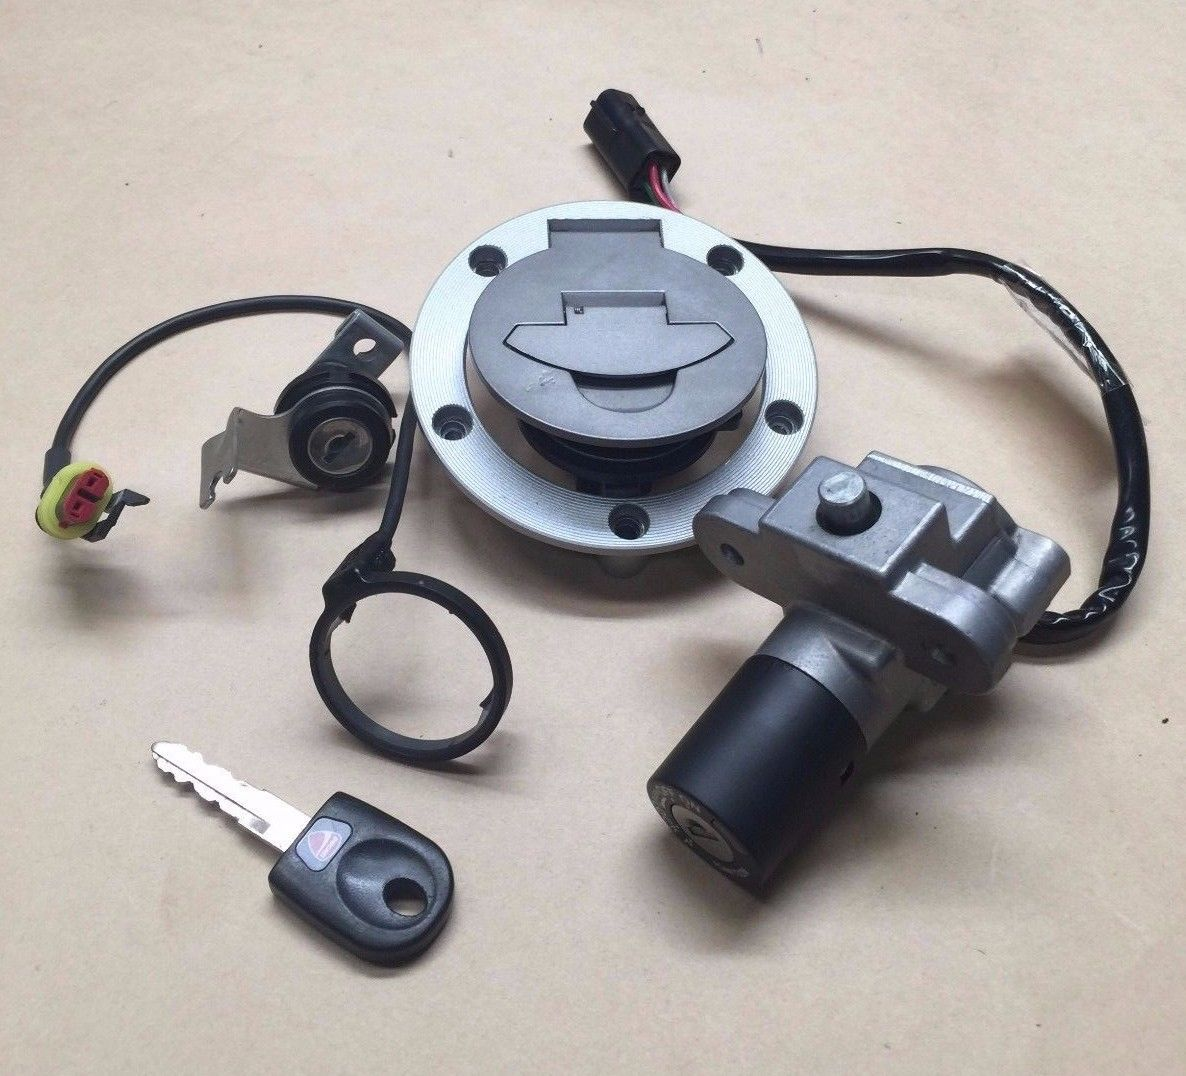 ducati 848 evo ignition switch gas cap tail lock key ignition ring